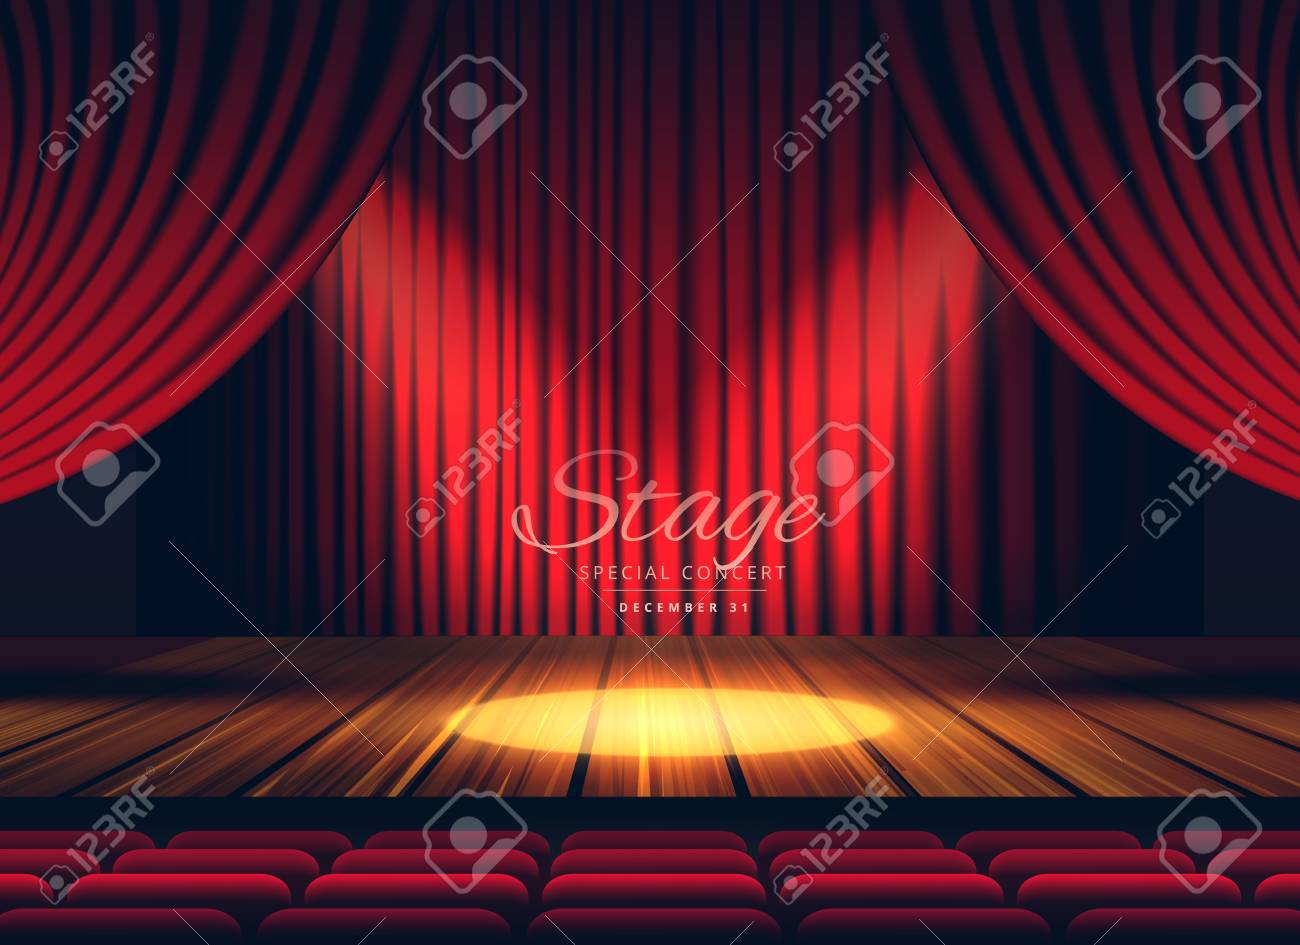 Premium Red Curtains Stage Theater Or Opera Background With Royalty Free Cliparts Vectors And Stock Illustration Image 78608626